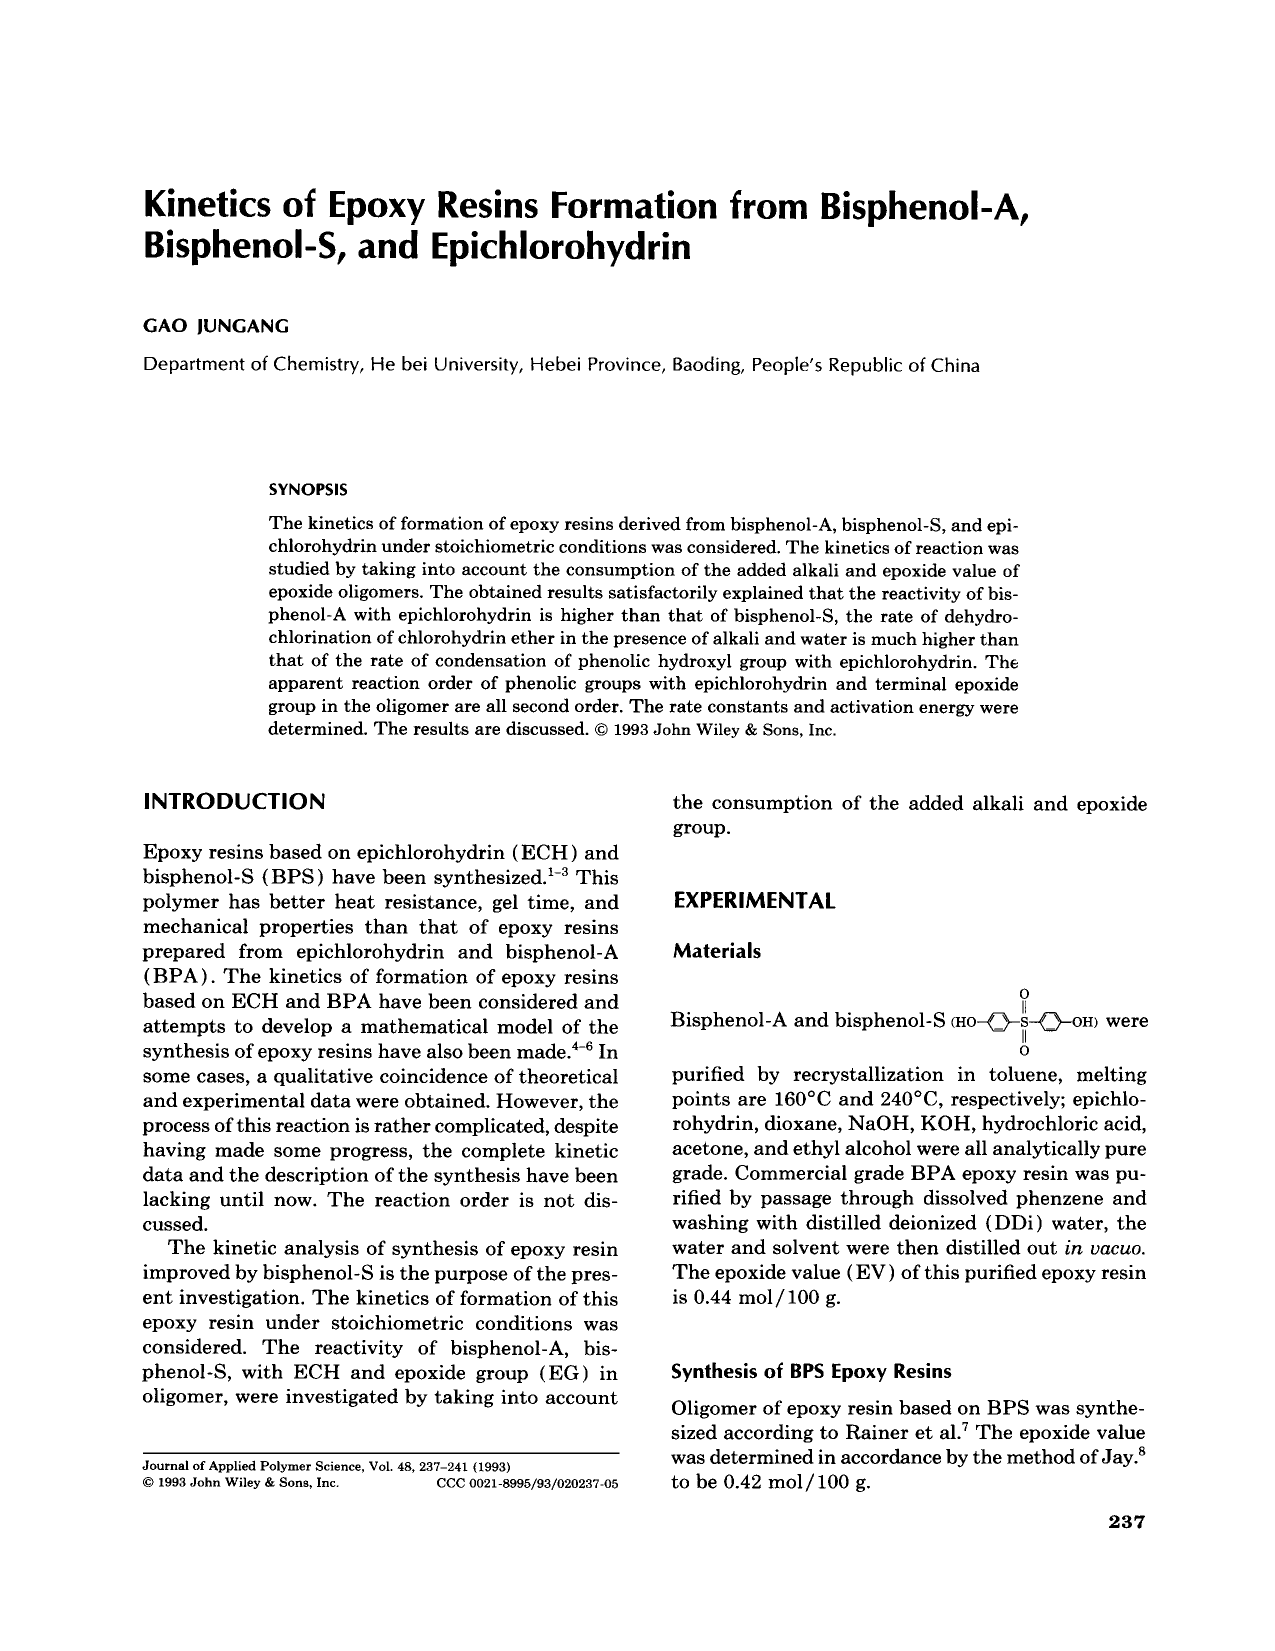 Kinetics of epoxy resins formation from bisphenol-A